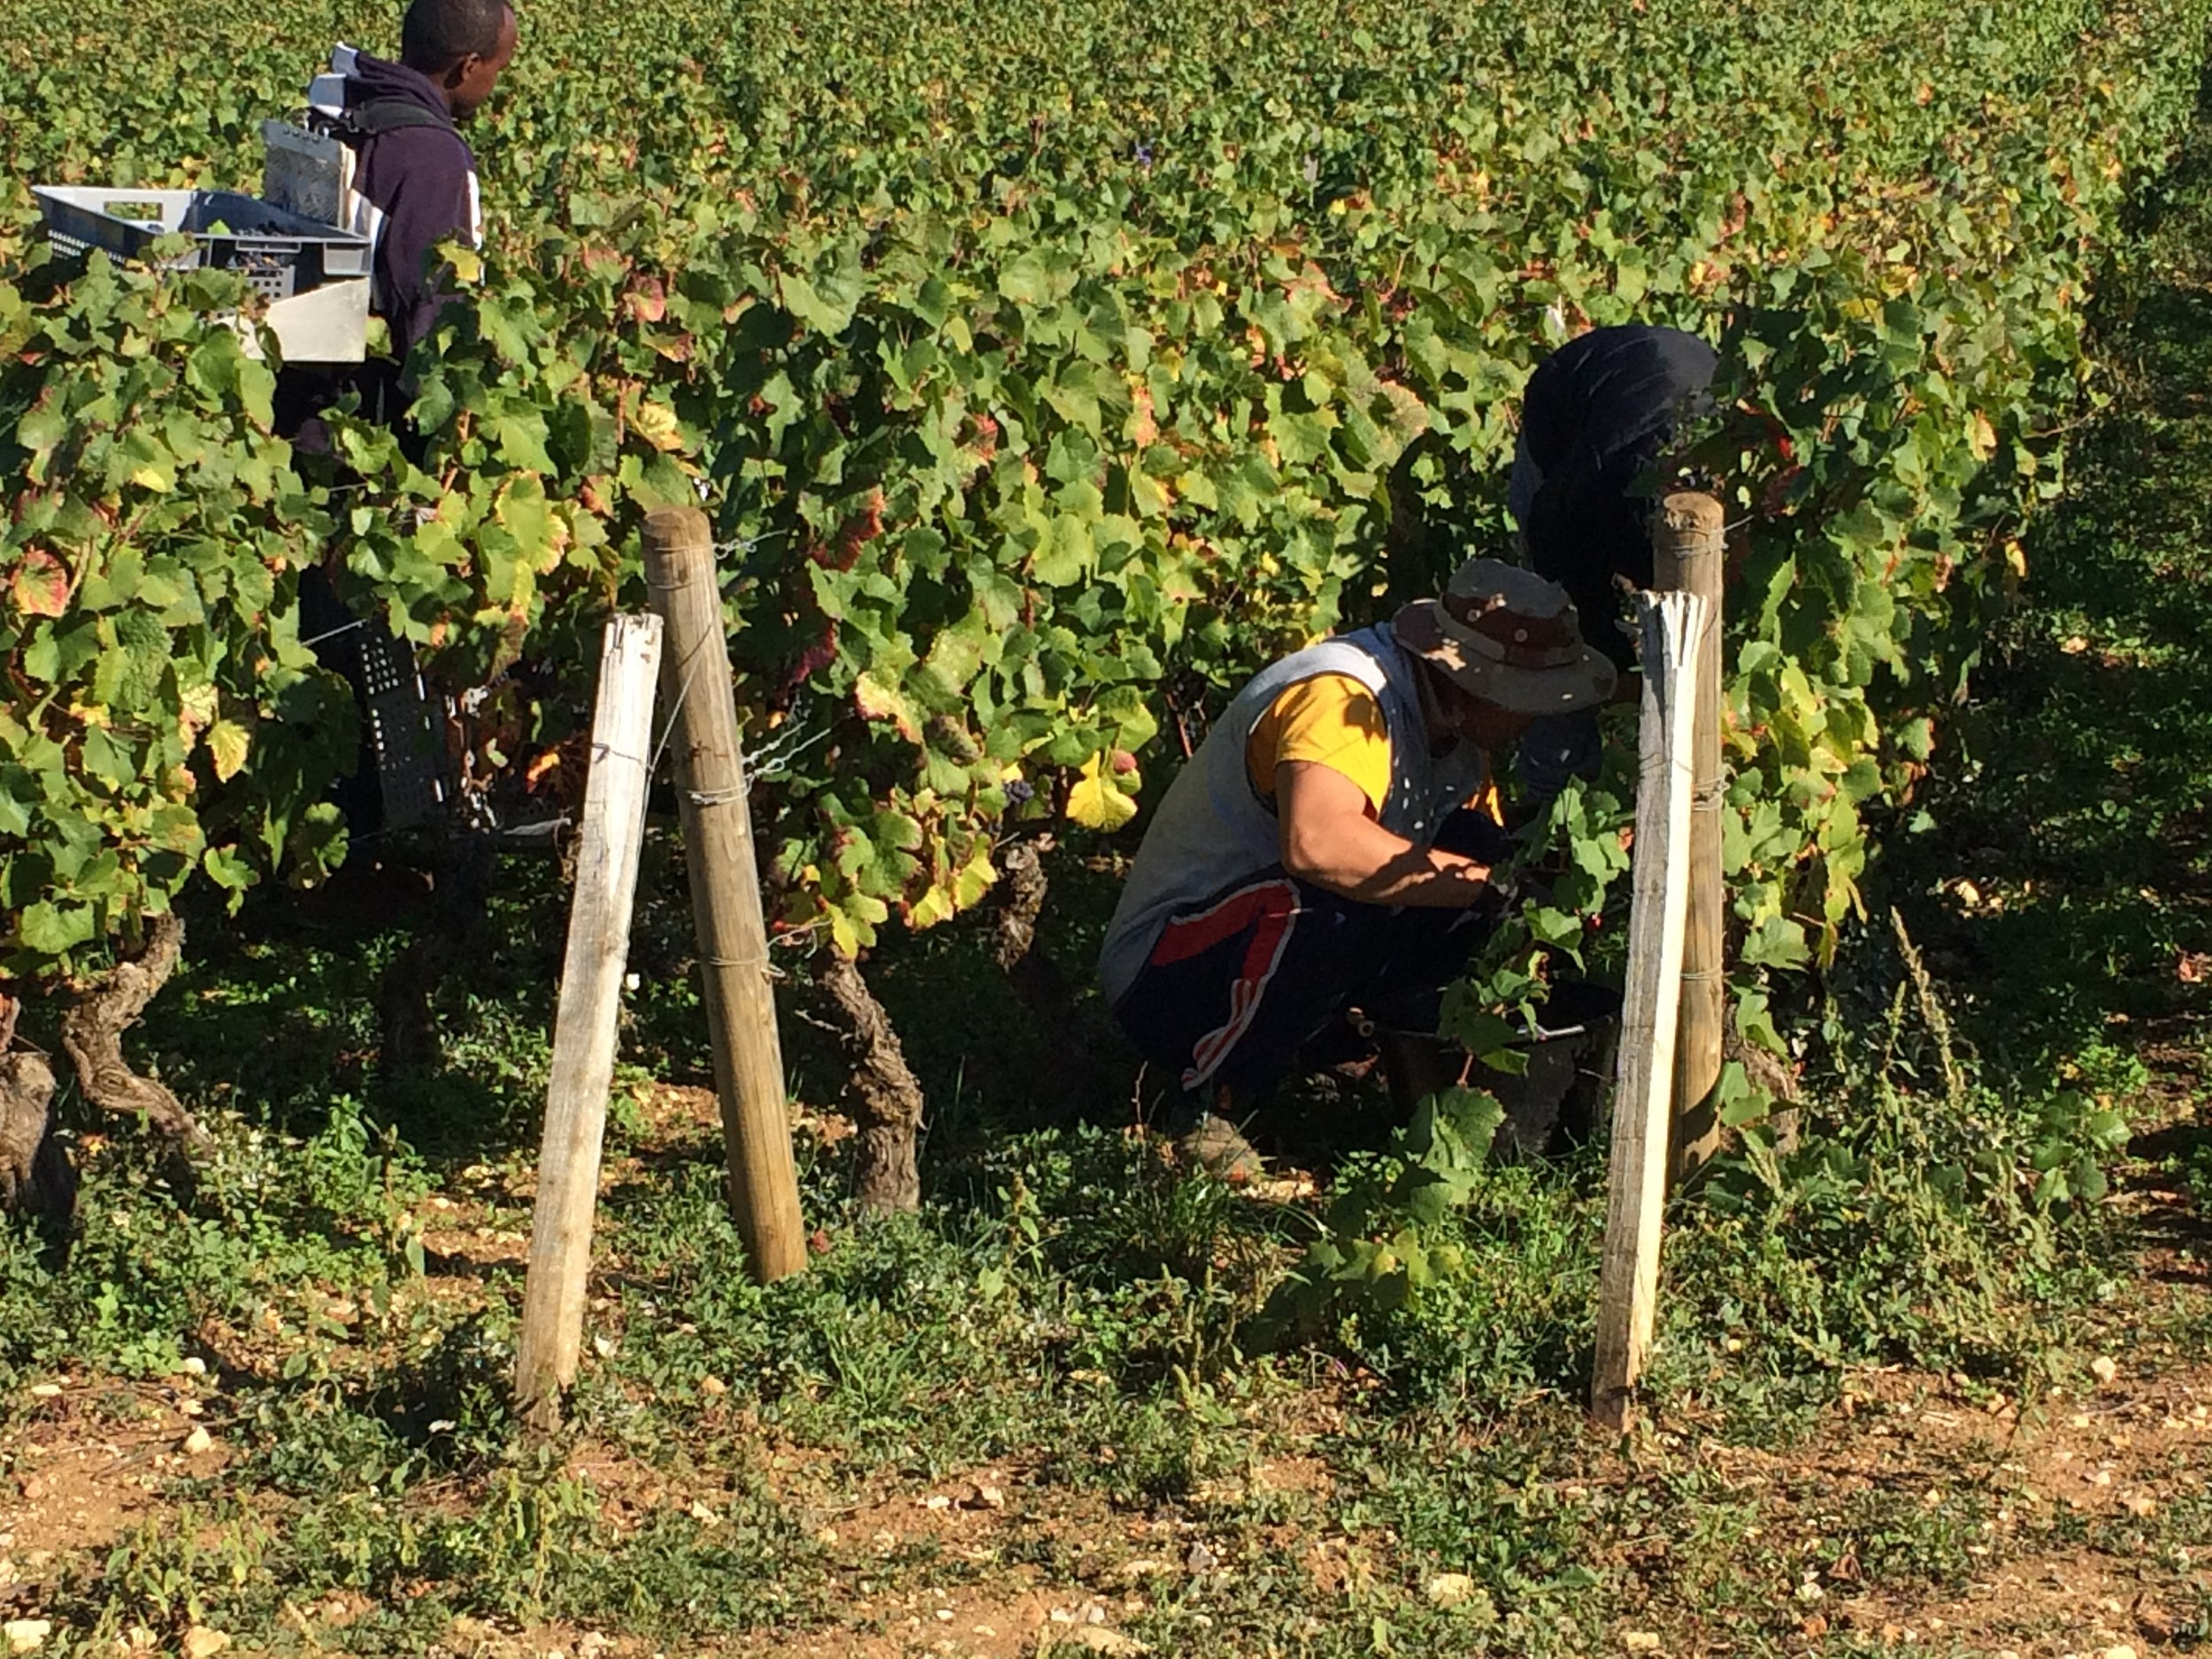 Les Vendangeurs at work today in Chambolle-Musigny